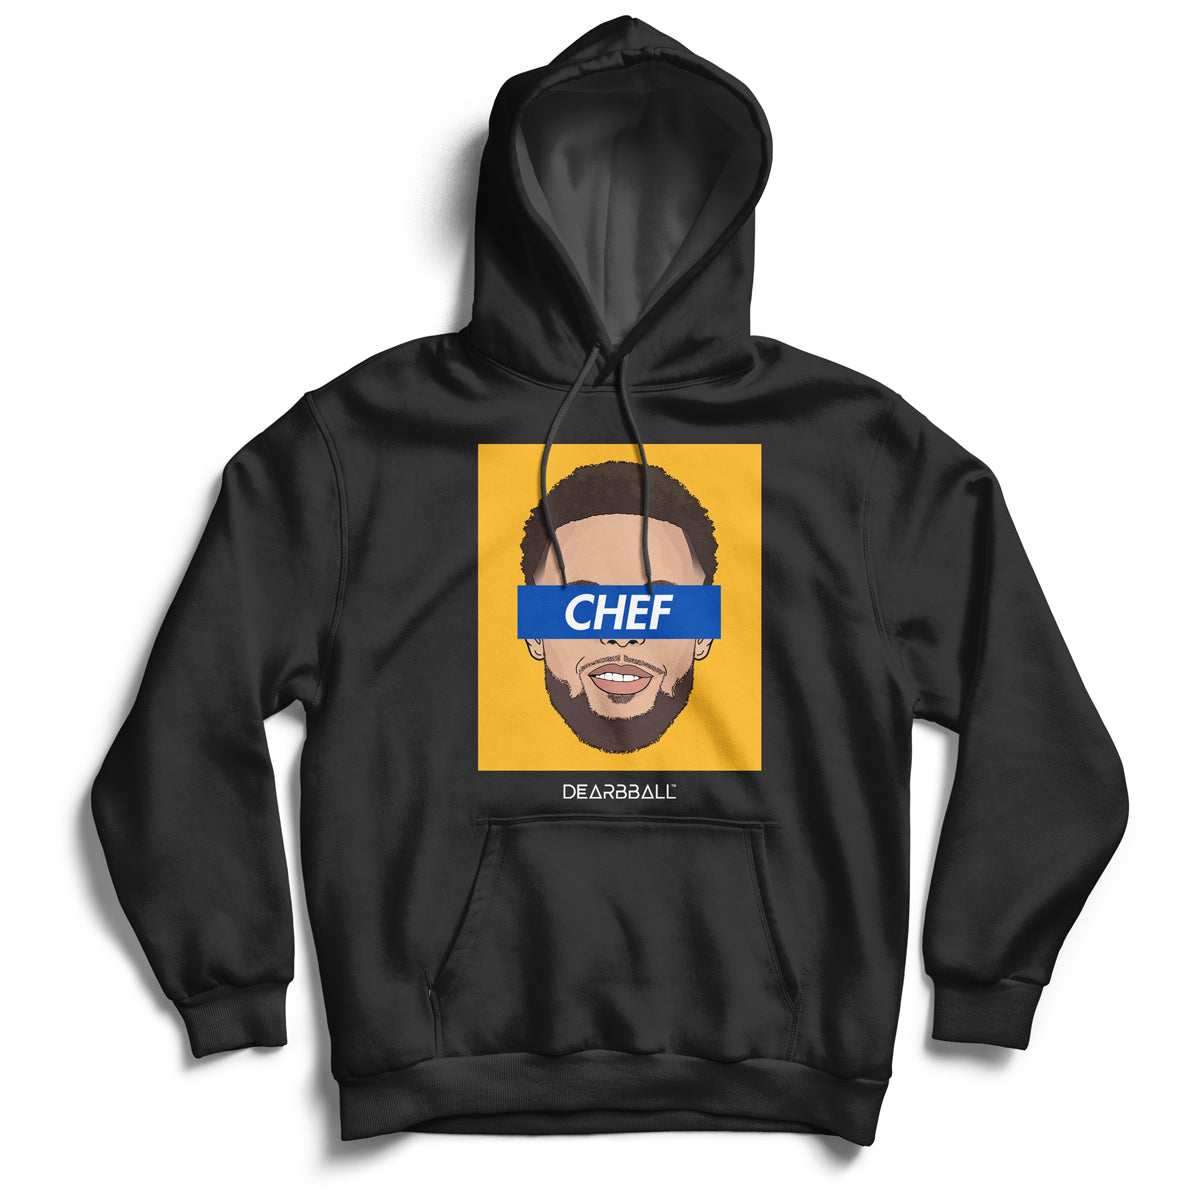 Stephen_Curry_hoodie_CHEF_Golden_States_Warriors_dearbball_black